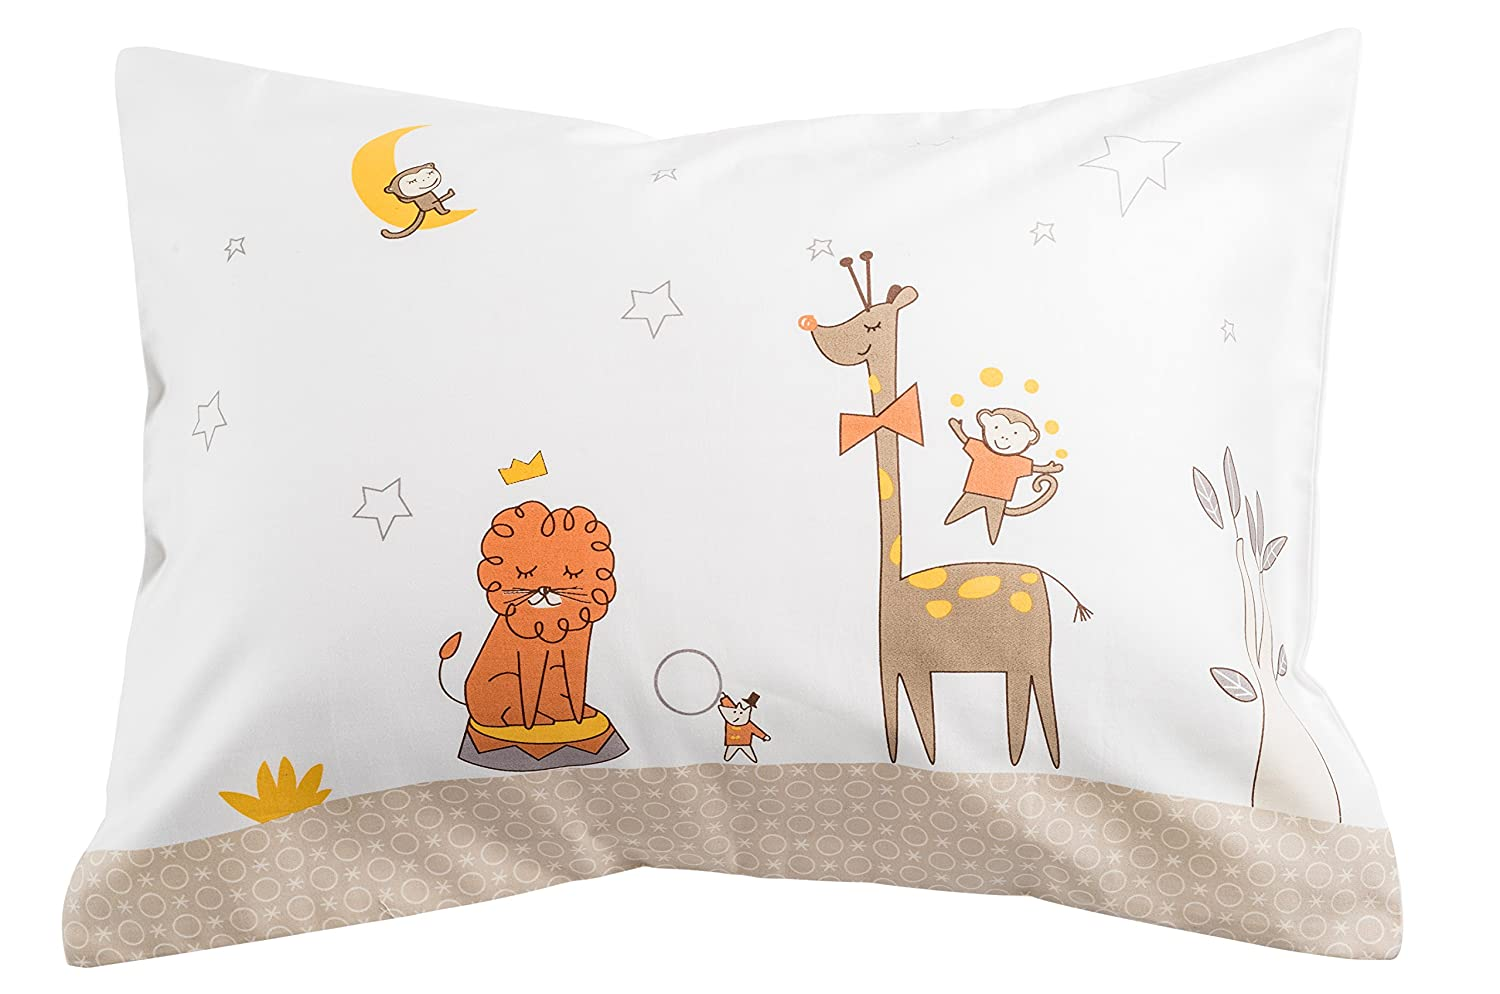 Toddler Travel Pillowcase 100% Softest Cotton Sateen Pillow Case, Covers 13x18 or 14x19, Toddler Baby Travel Pillows Naturally Hypoallergenic-Kids Design- Envelope Style Cases 400 TC (Circus) by The Pillowcase Zappy Products